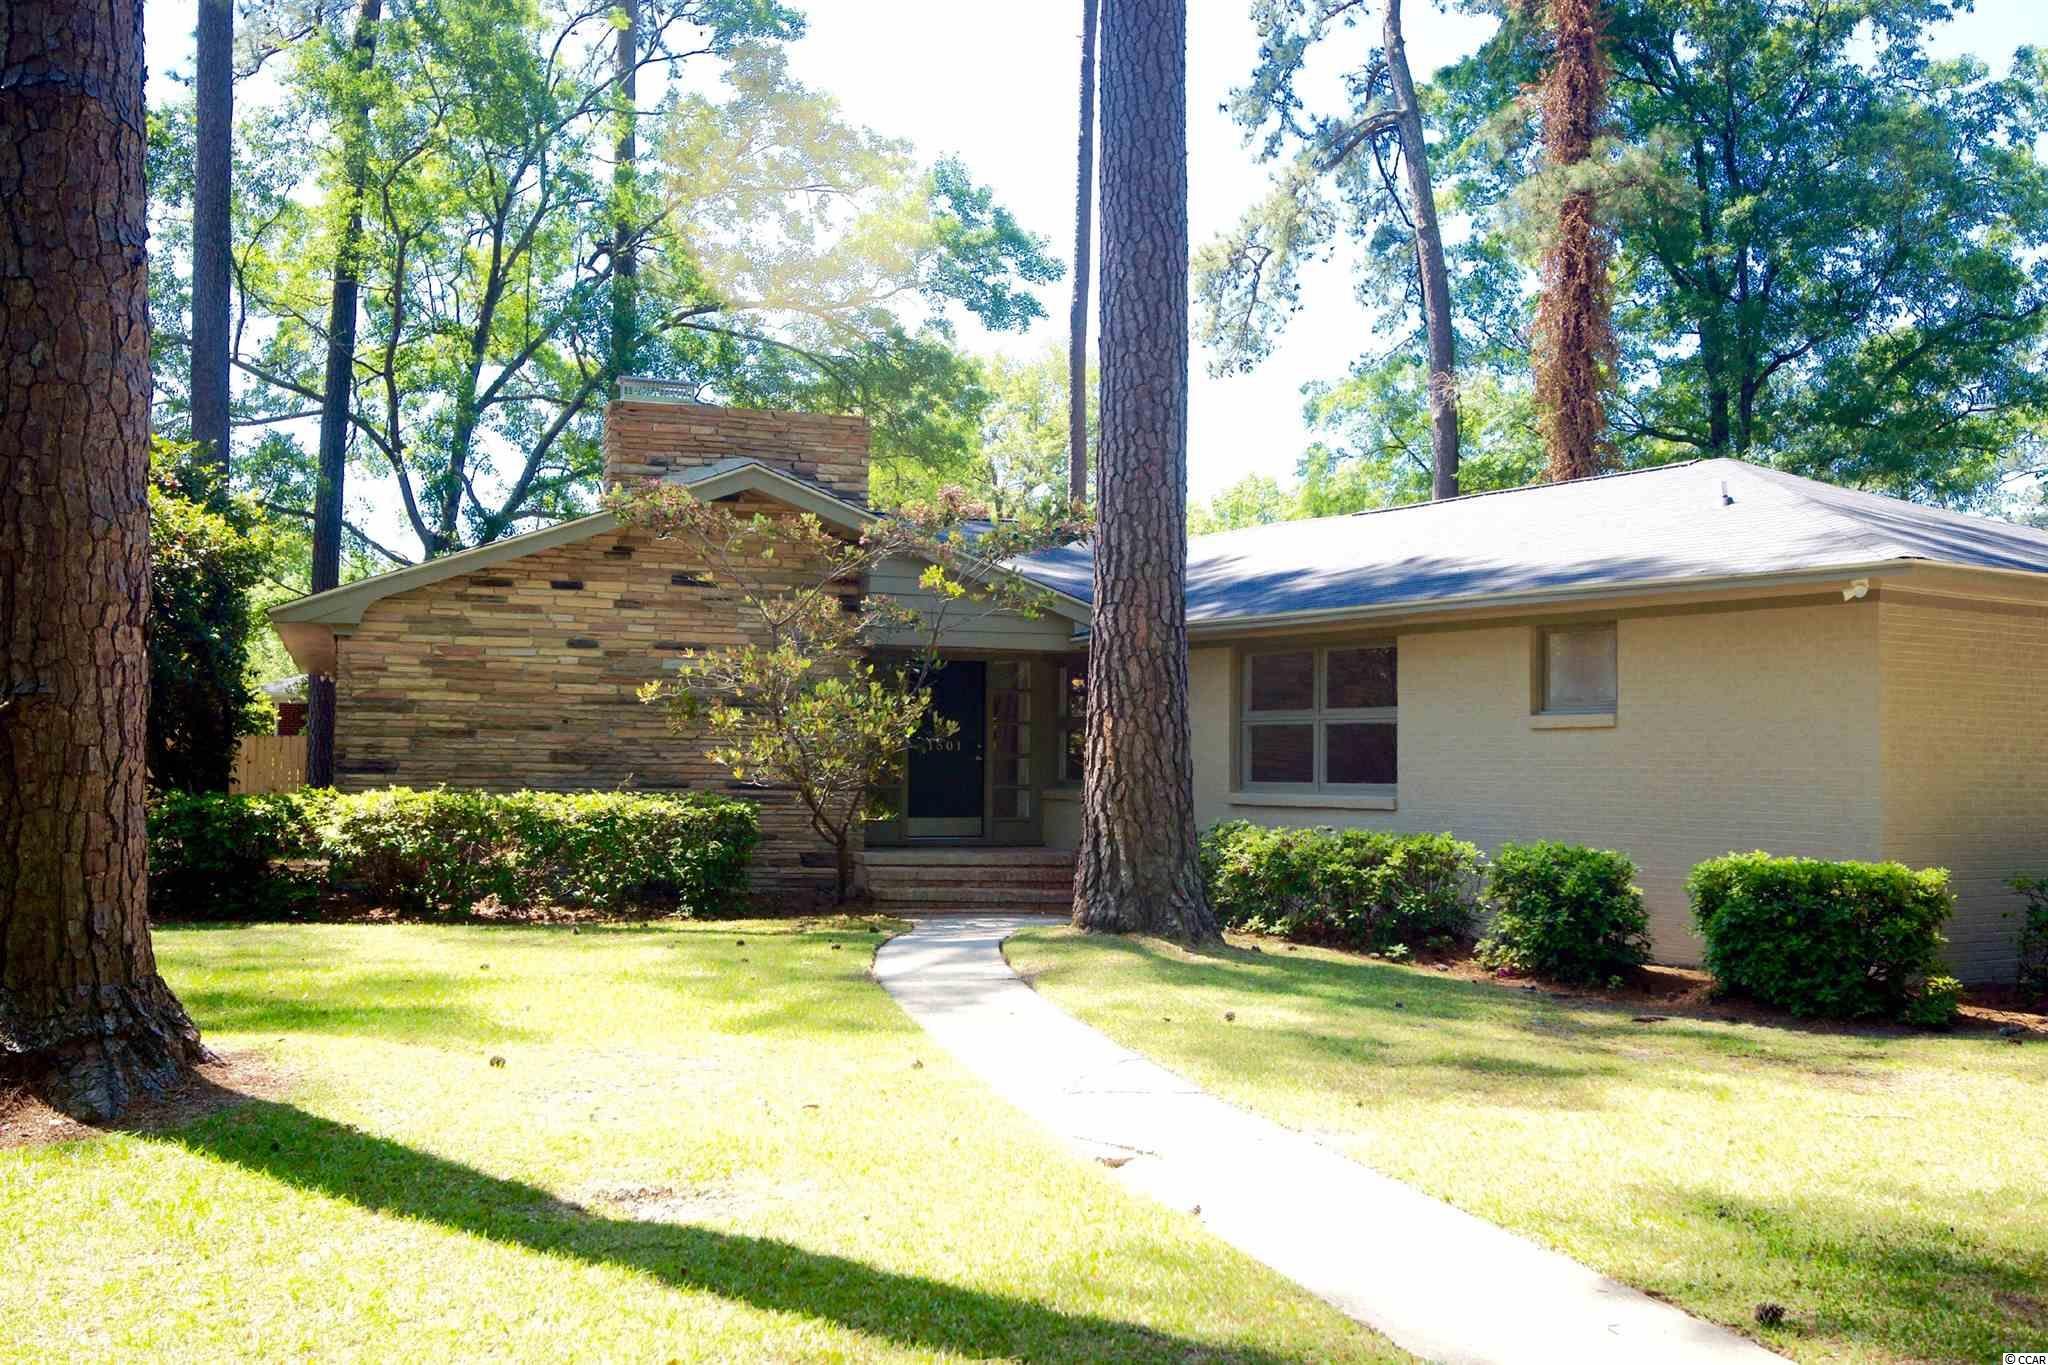 This Charming Conway Mid Century Modern Home has been completely redone.  From TOP to BOTTOM...new Roof and blown in isulation, new pex pipe plumbing & all Electrical including panel, new 50 gallon water heater & HVAC System along with encapsulation. And don't forget all the interior finishes as well. Both baths have been redone and the kitchen as well.  Hardwoods have been sanded and refinished with remaining areas get High End Luxury Vinyl Planks.  All new LED lighting and fans, interior doors and rear exterior doors. No stone left unturned, this home sells itself.  No HOA, so plenty of room to park you MotorCoach or Boat.  Large beautiful lot with mature trees in a well established neighborhood.  Quaint Downtown Conway just minutes away and Conway Parks & Recreation Center in biking distance.  Schedule your Appointment NOW, Turn Key Homes with this much Character don't last long!!!!